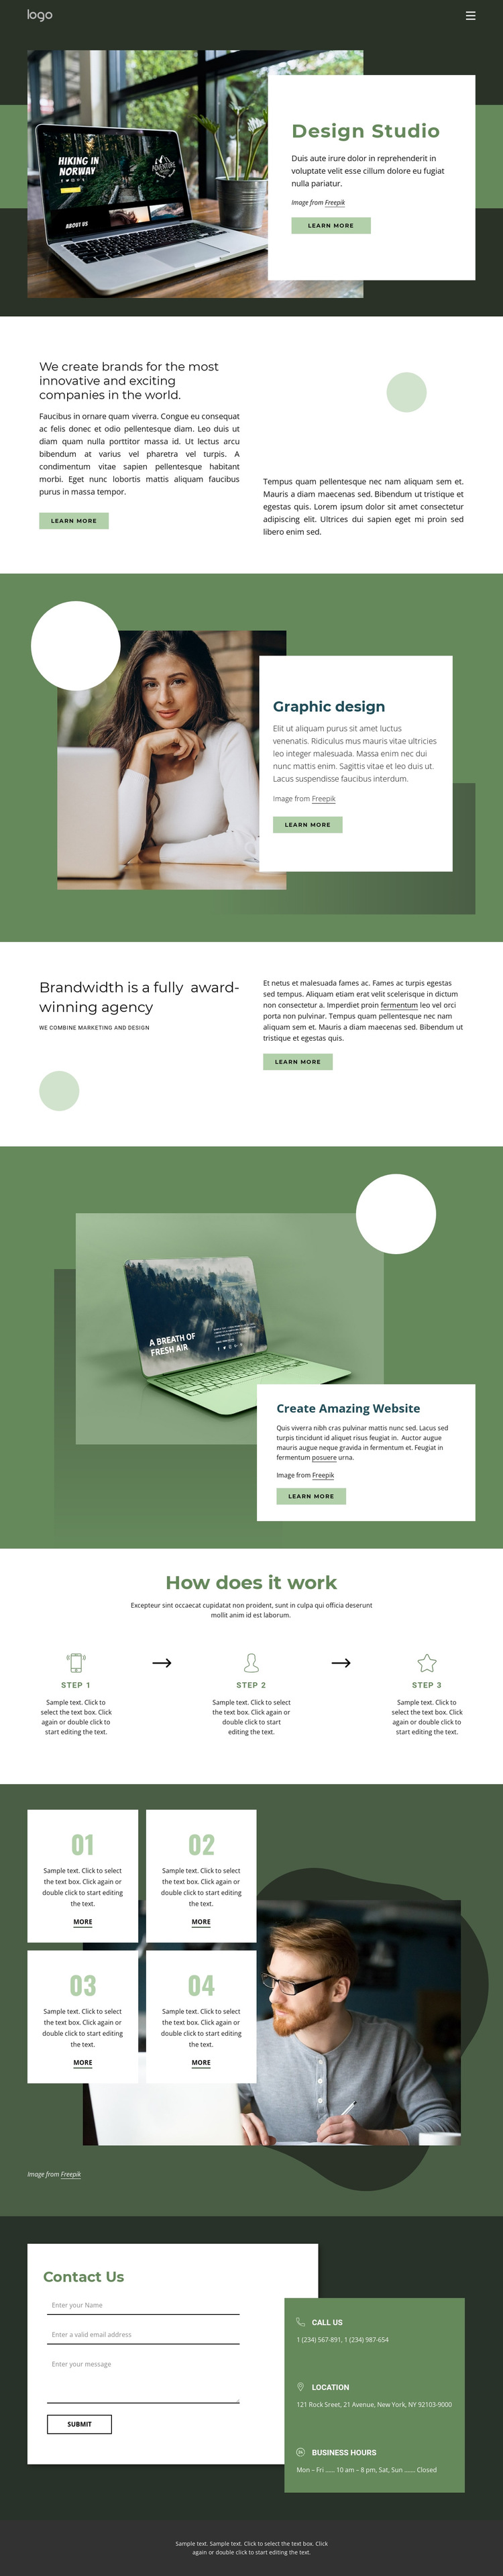 Design inspiration from nature HTML5 Template